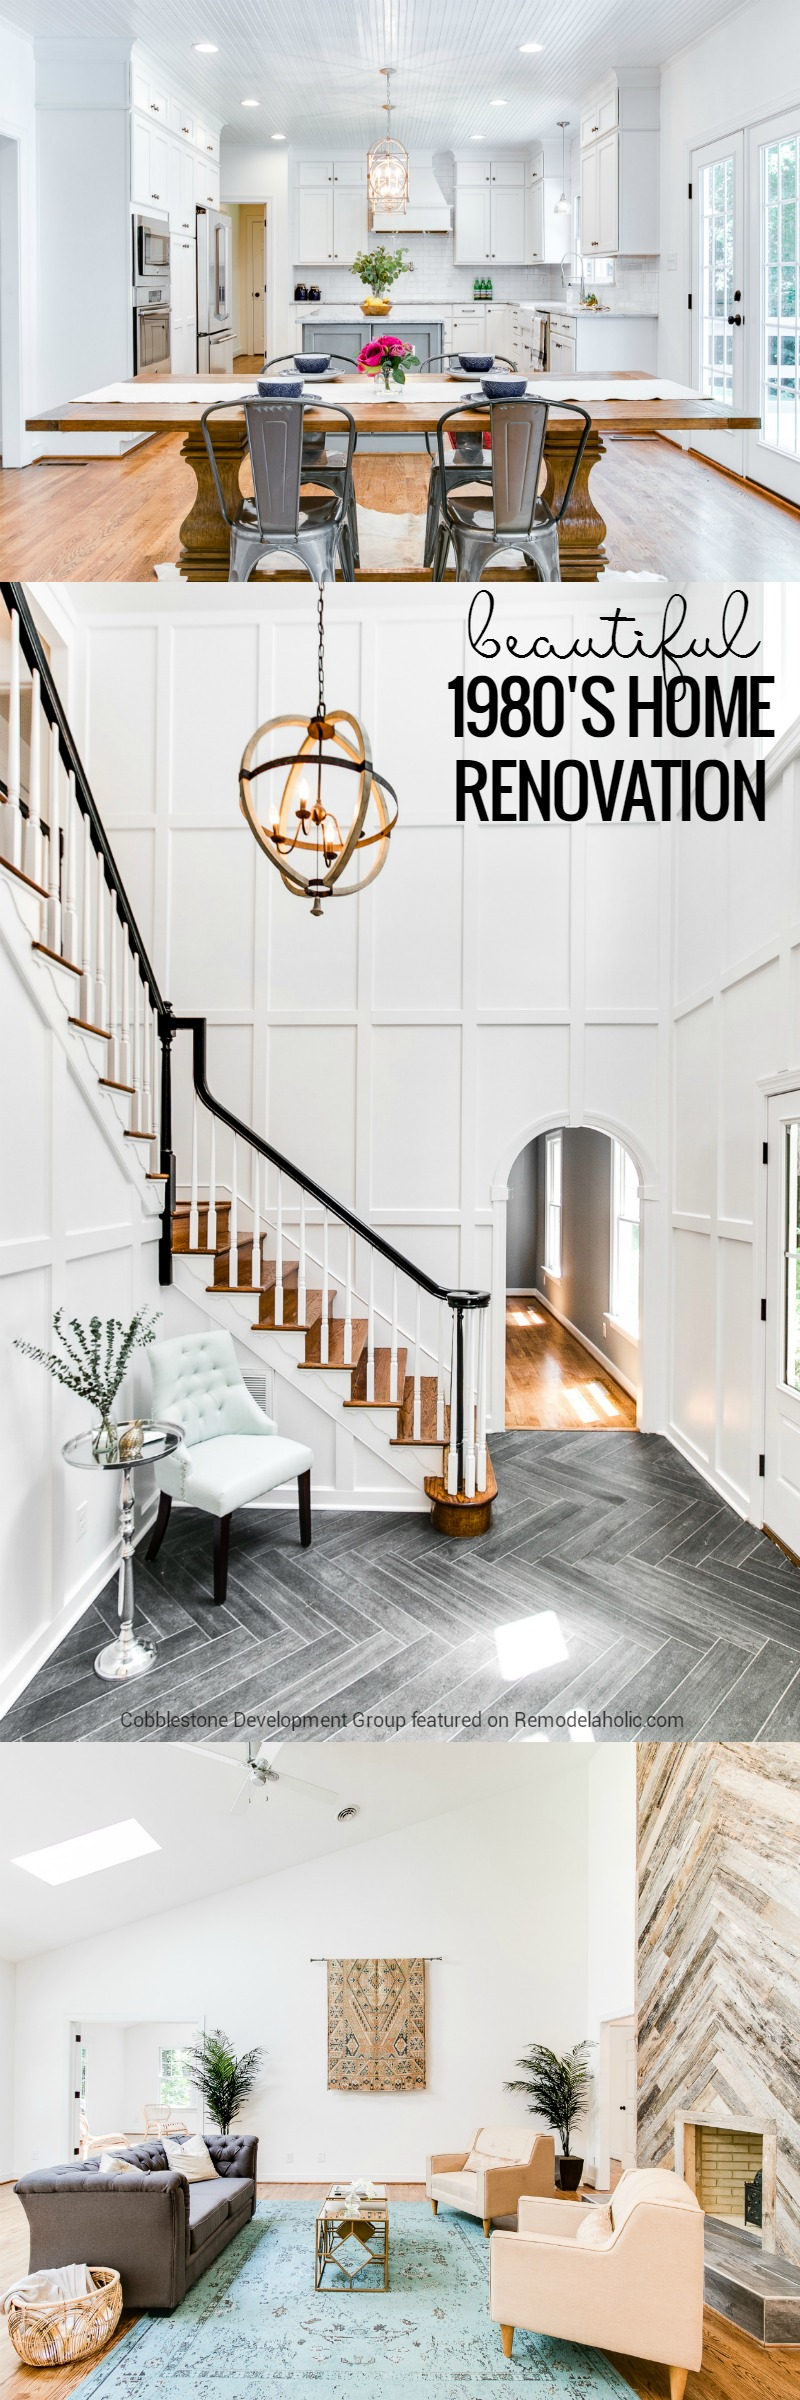 This Dated 1980 S Renovation Became A Beautiful And Clically Modern Home With Some Design Choices